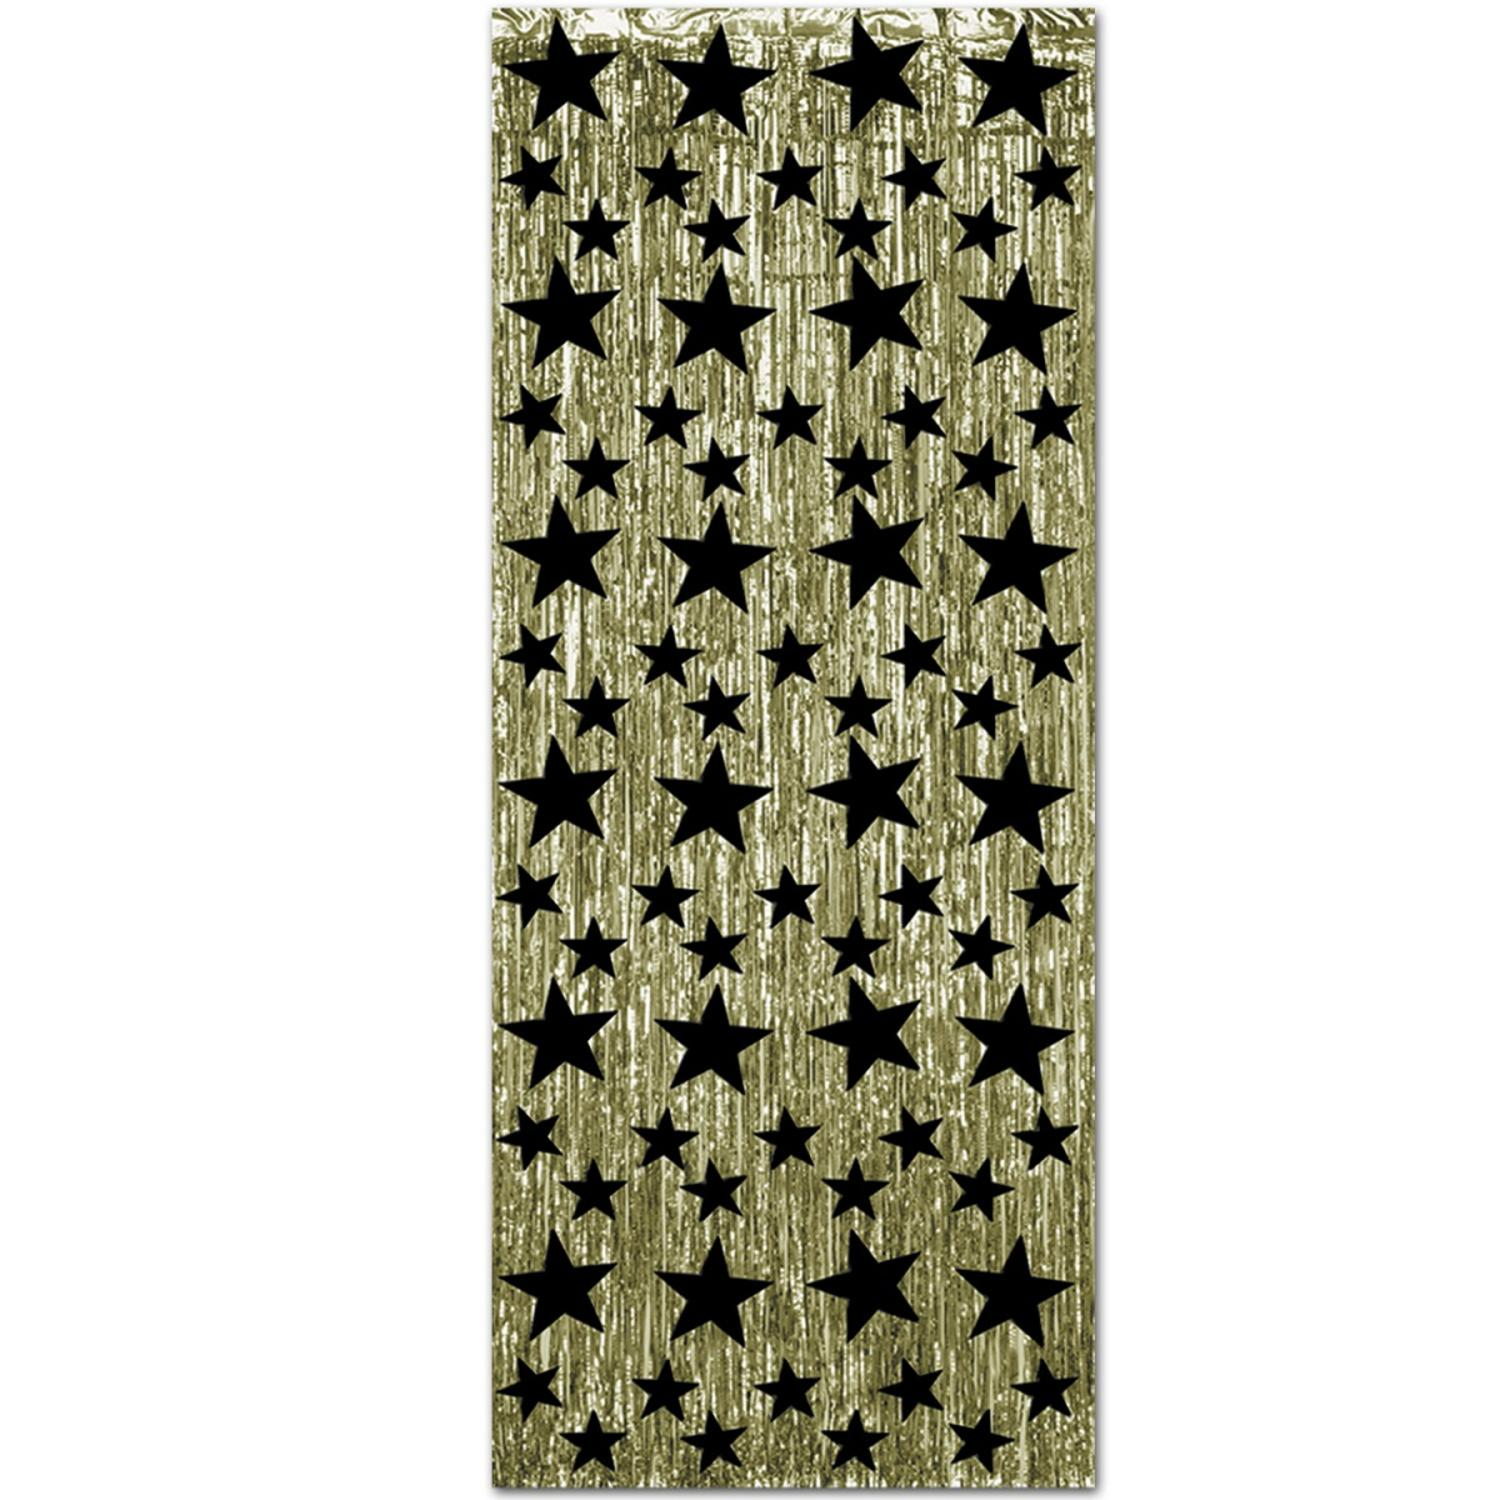 Pack of 6 Gold Decorative Black Star New Year Party Hanging Drapes